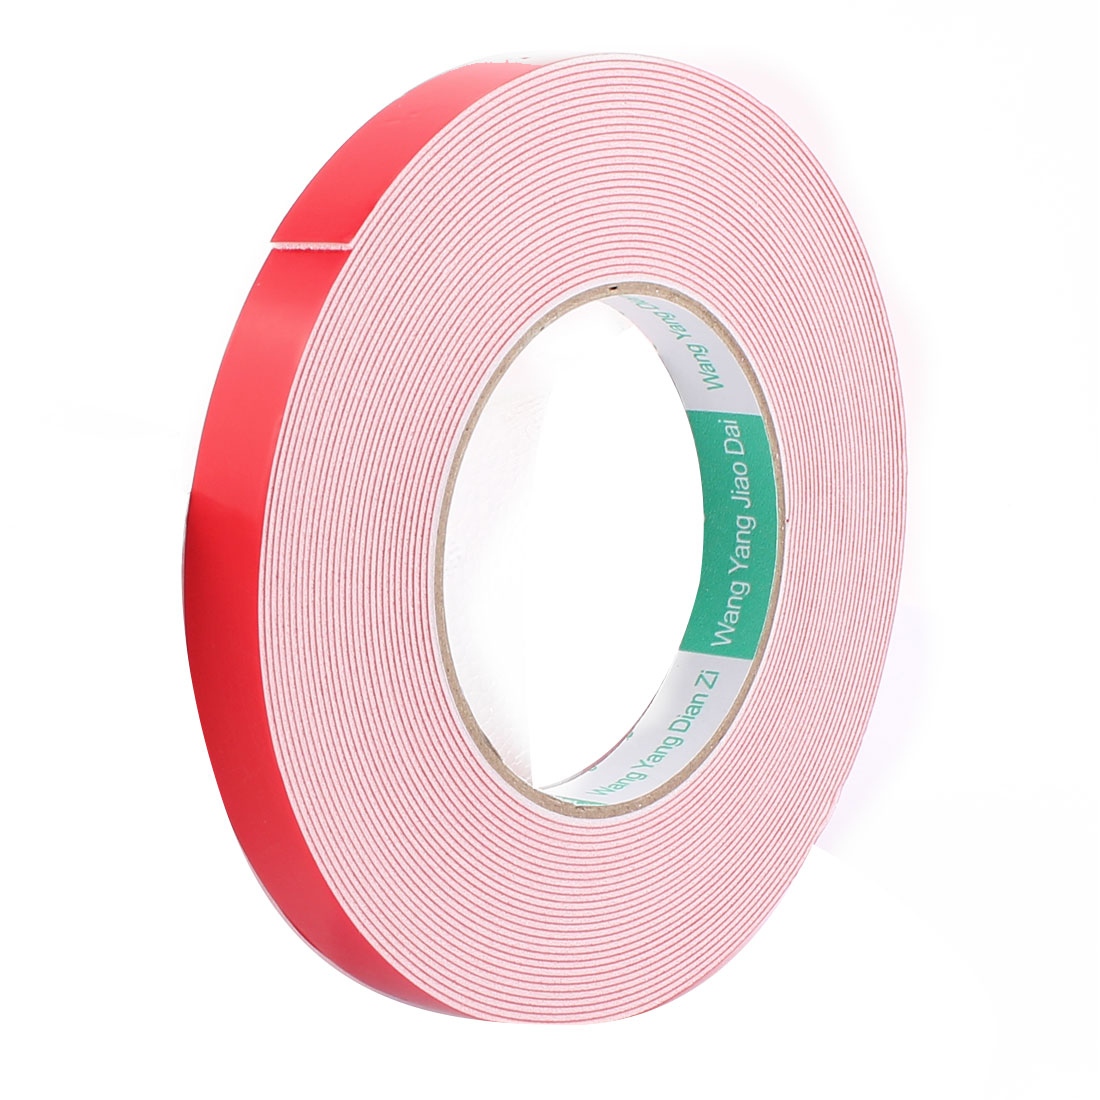 1.5CM Width 10M Long 1MM Thick White Dual Sided Waterproof Sponge Tape for Car